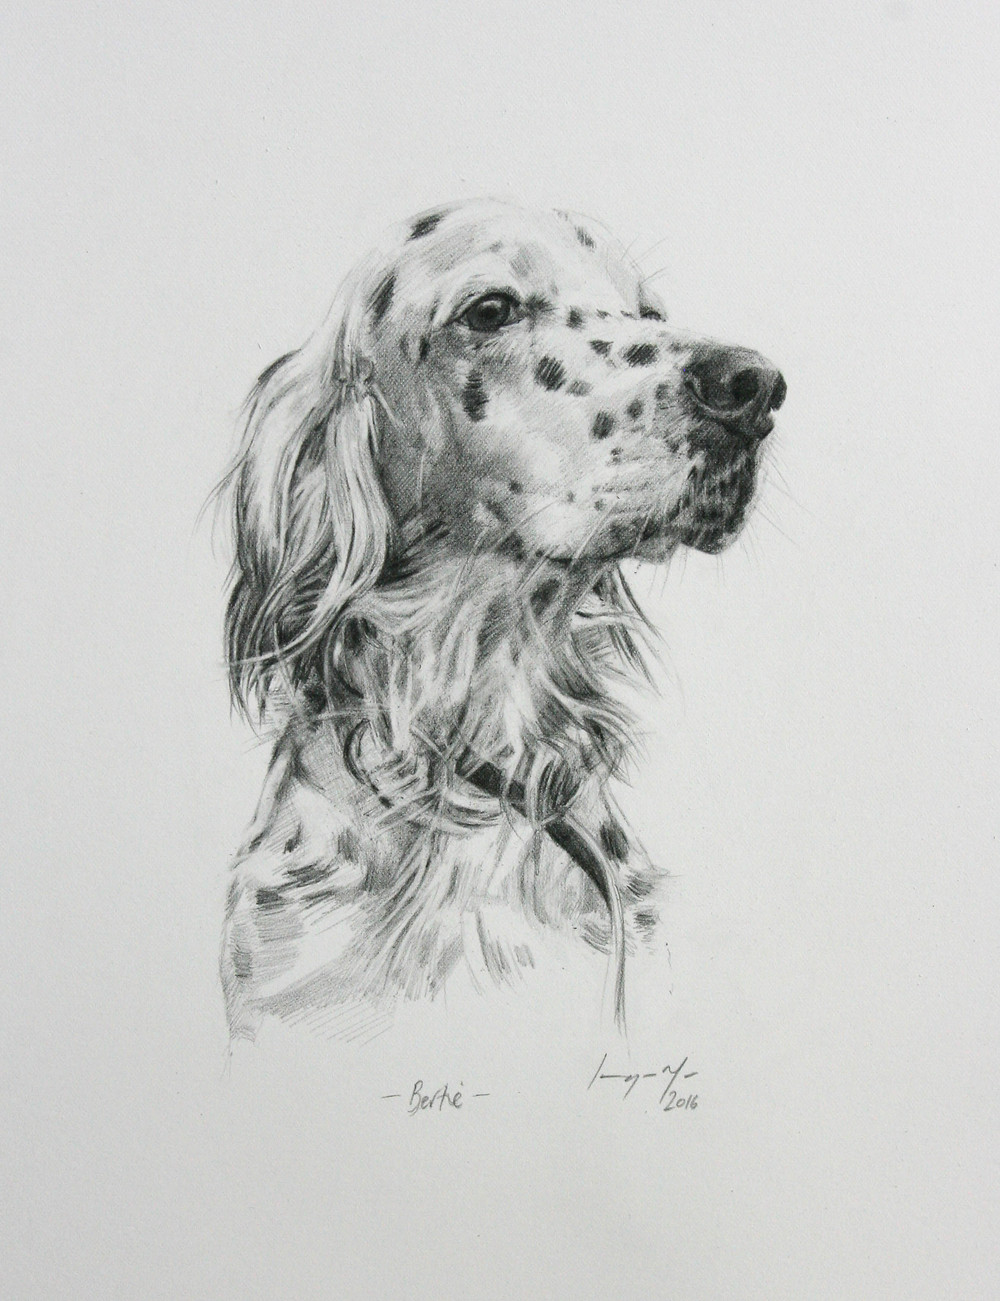 Bertie - pencil drawing on paper